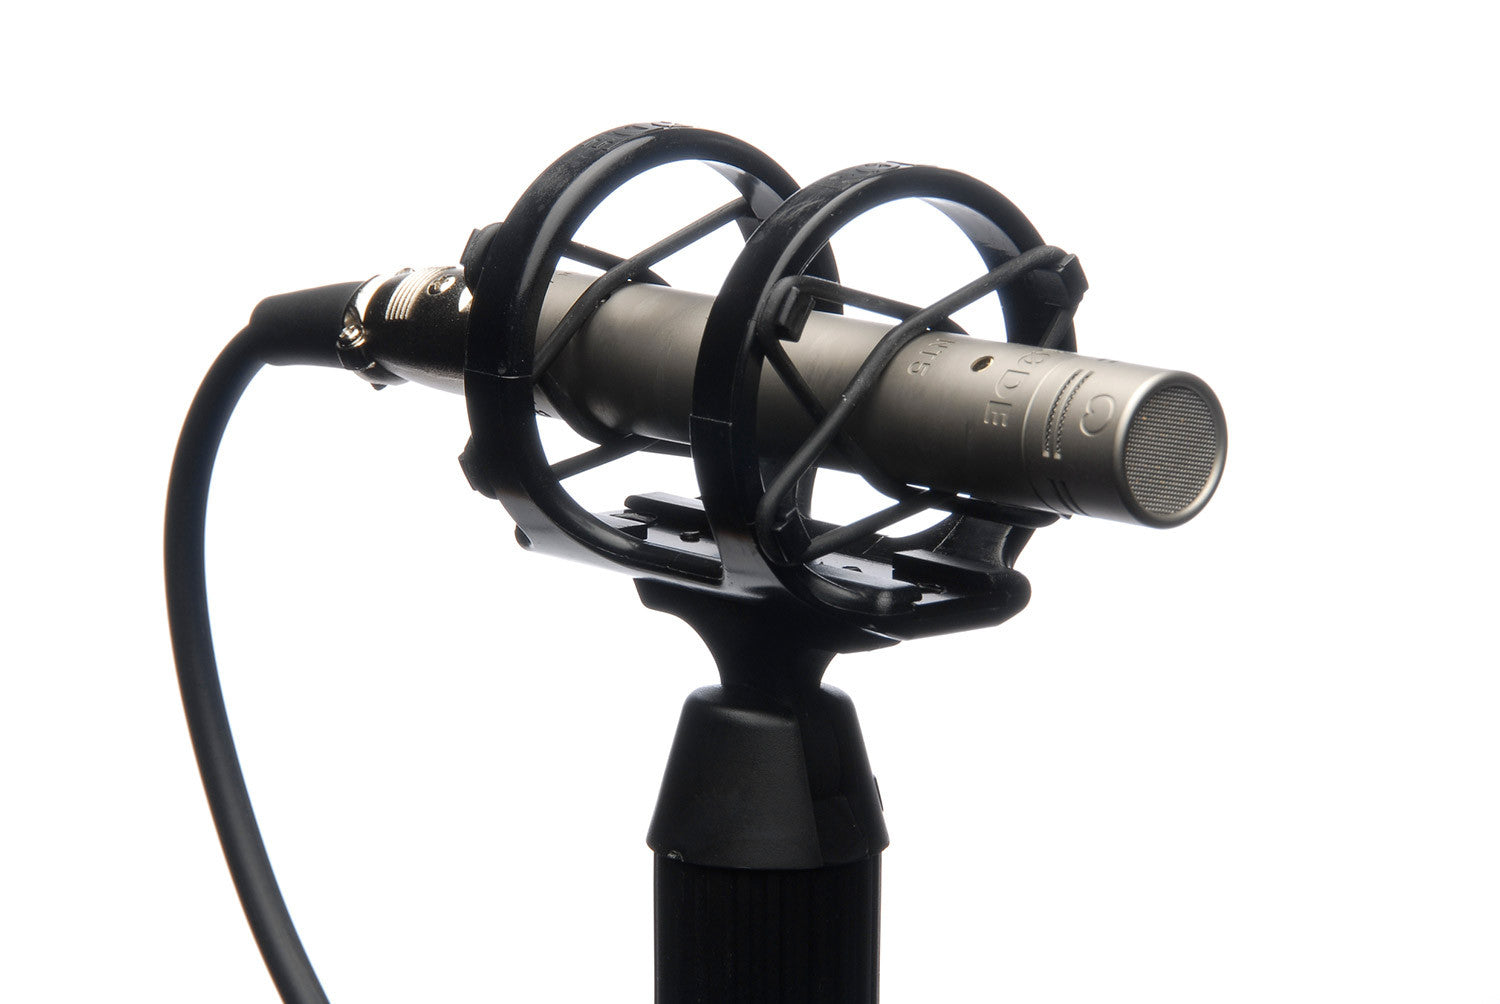 RODE NT5 Cardioid Studio Condenser Microphones (Single Microphone) - Audio - RØDE - Helix Camera